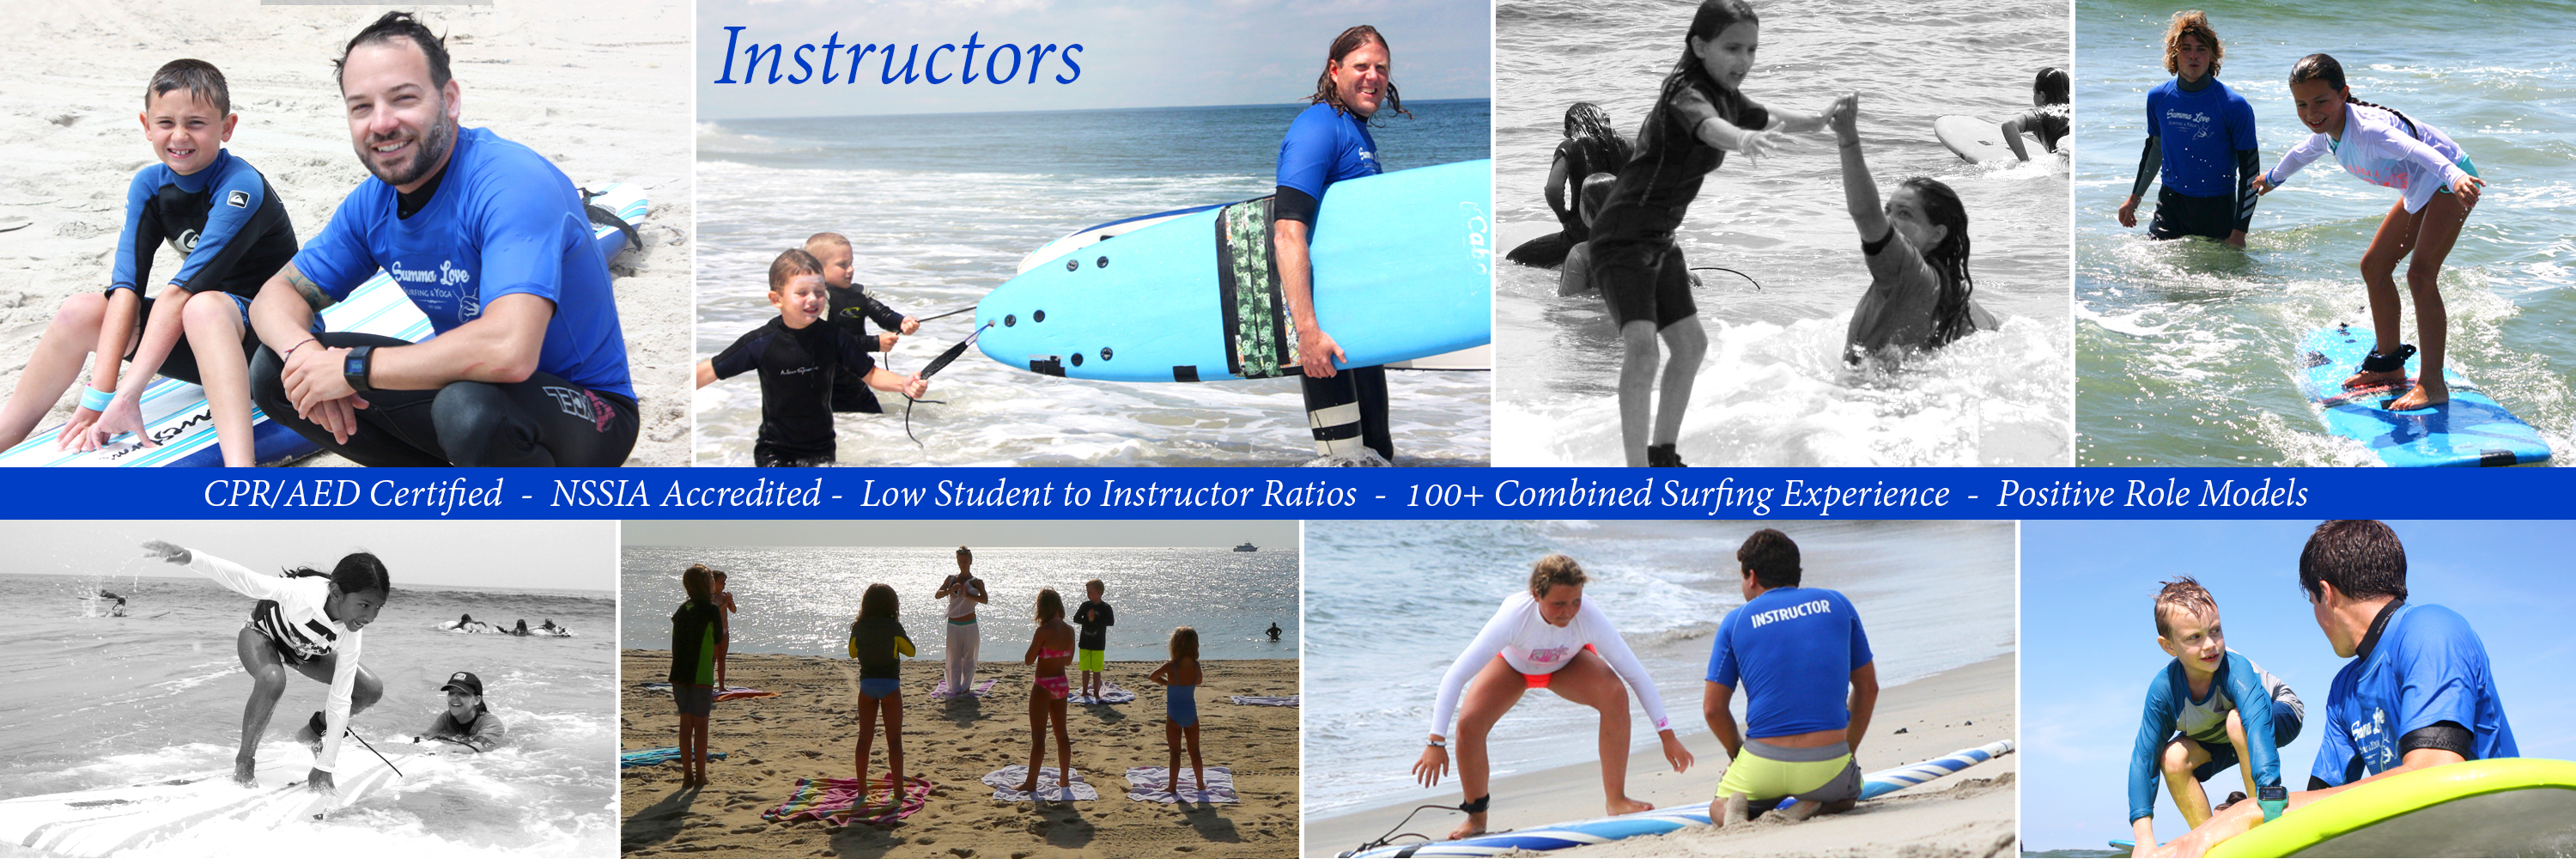 New Jersey Surfing Instructors